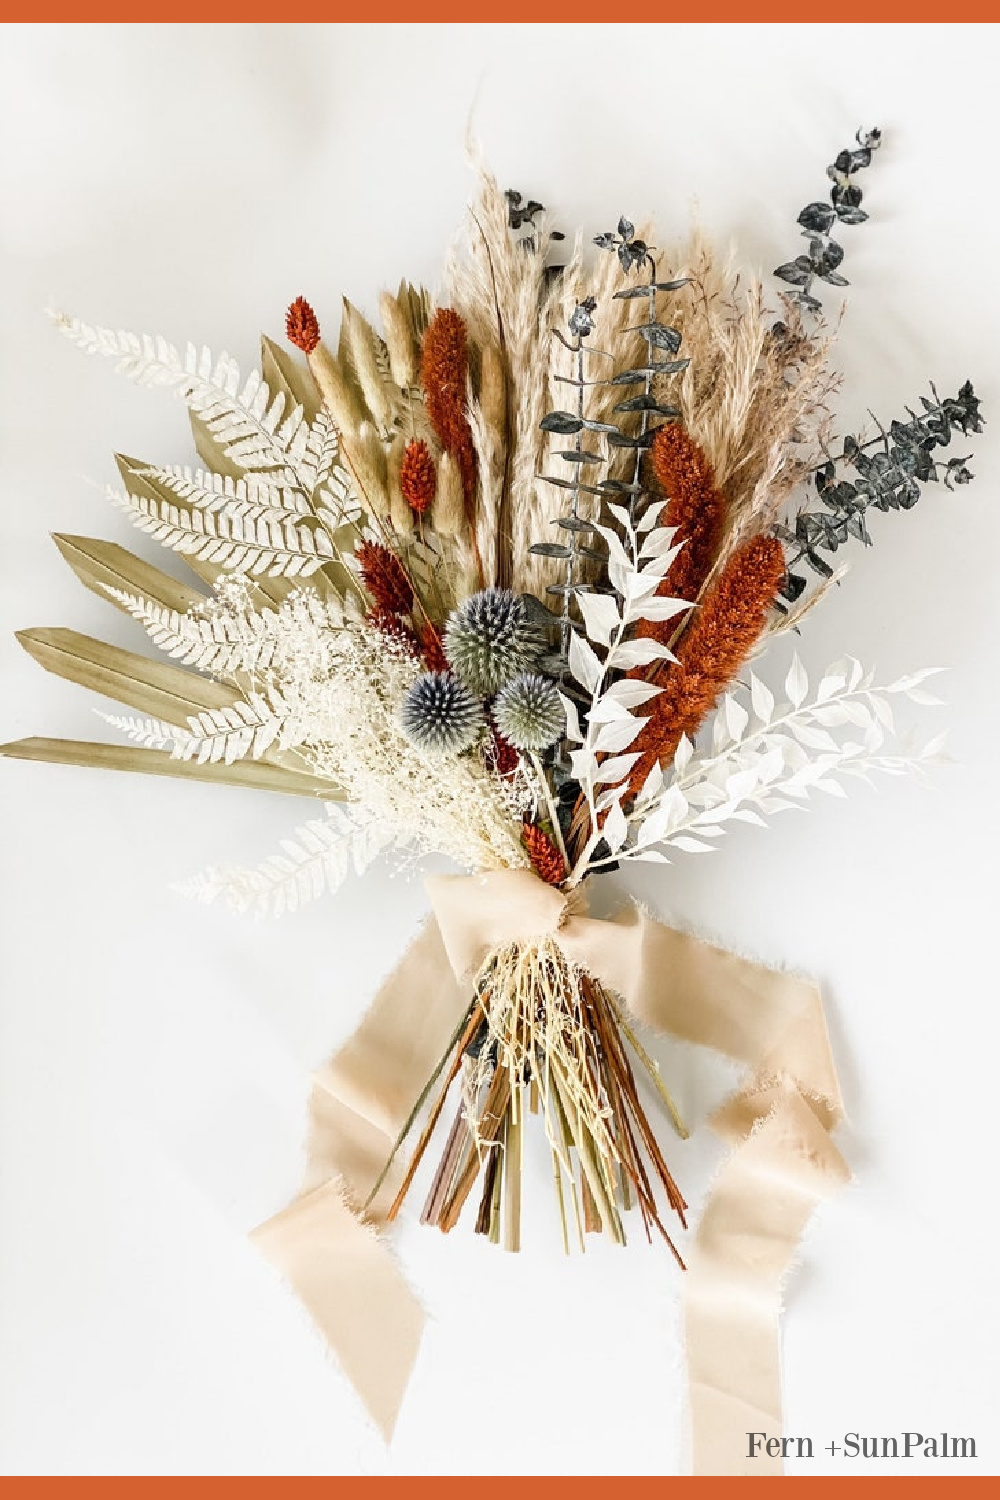 Beautiful fall floral bouquet with everlasting blooms - Fern + Sun Palm. #fallfloral #pampasgrass #weddingflorals